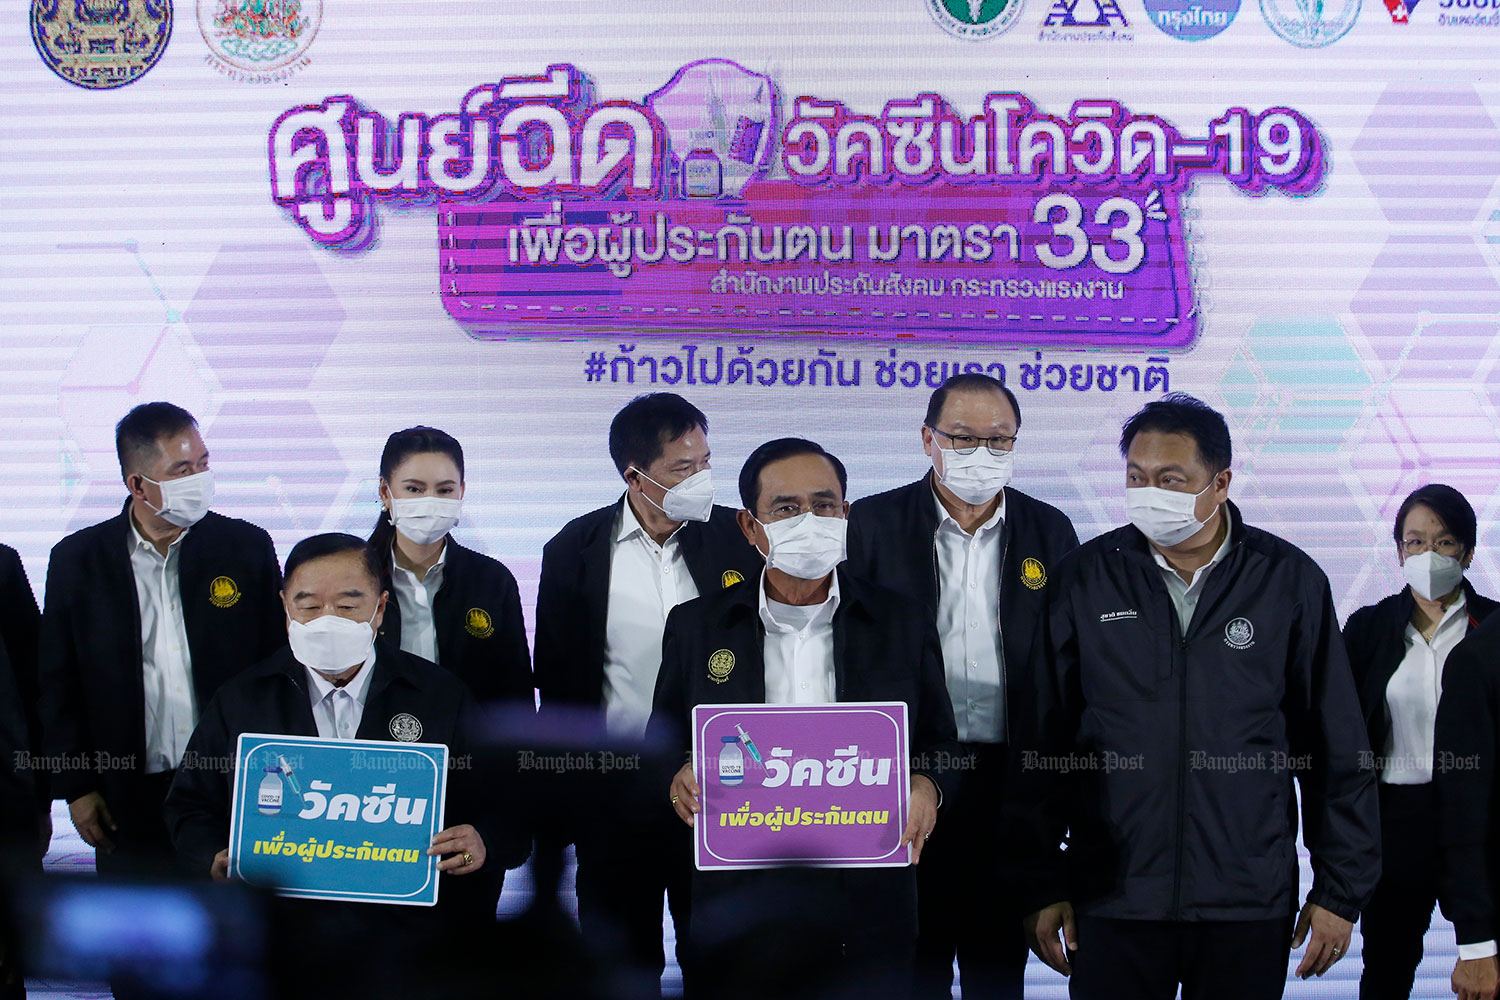 Prime Minister Prayut Chan-o-cha and others visit a Covid-19 vaccination centre at the Thailand-Japan sports stadium, Din Daeng district, Bangkok on June 7. (Photo: Wichan Charoenkiatpakul)